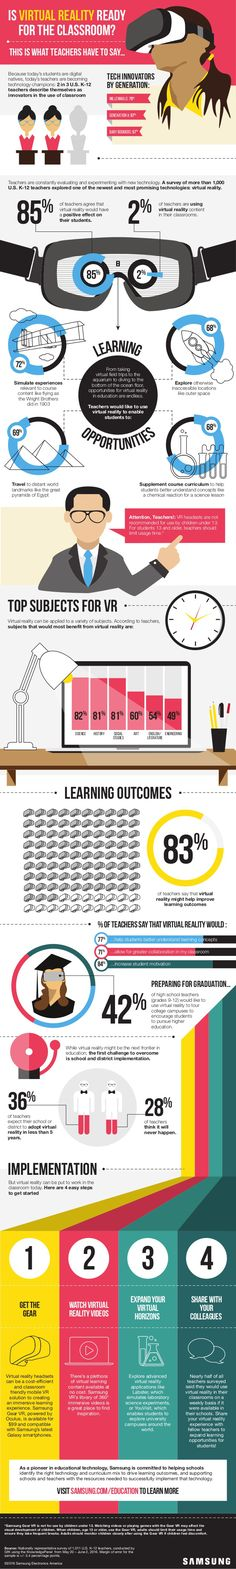 Is virtual reality ready for the classroom? #infographic